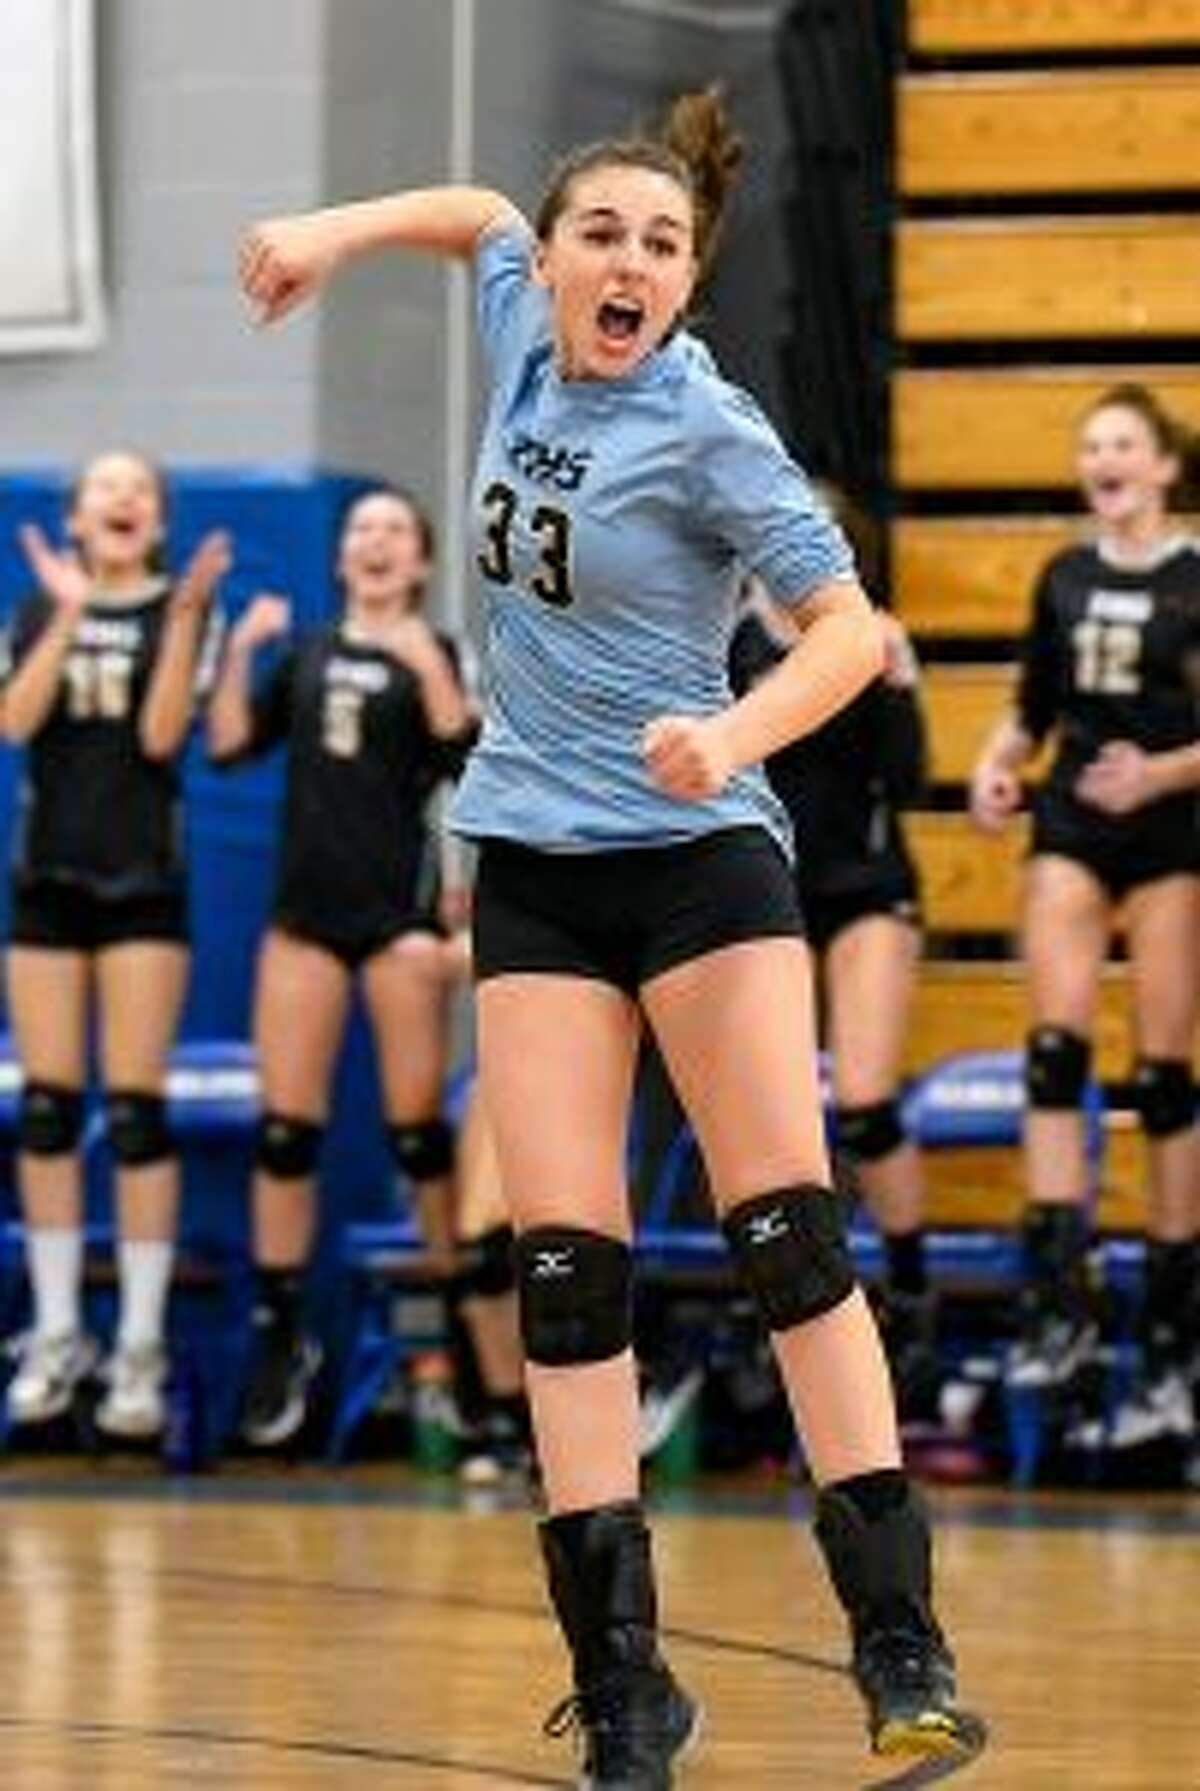 Rachel Hage had 11 digs from her libero position.